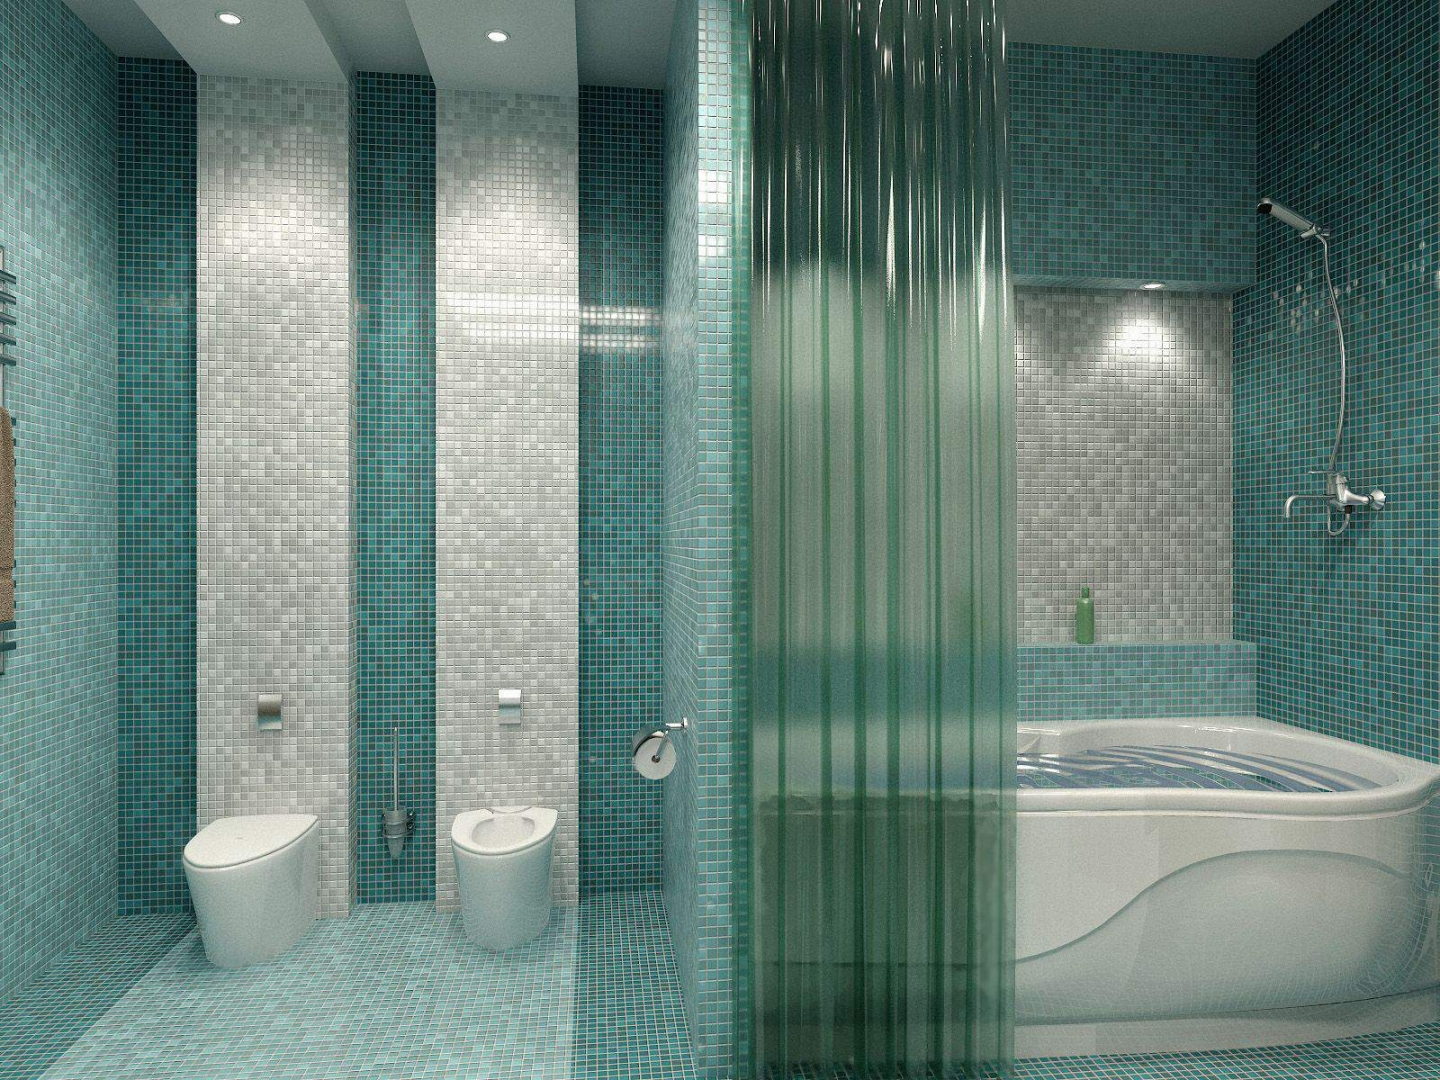 Innovative Purple And Turquoise Colour Schemes For Small Bathrooms, Light Turquoise Colors For Bathroom Design Ideas, Small Bathroom Tiles Turquoise Colors Feel Relaxing And Calming Turquoise, Which Is Blue And Green Colors Mix, Bathroom